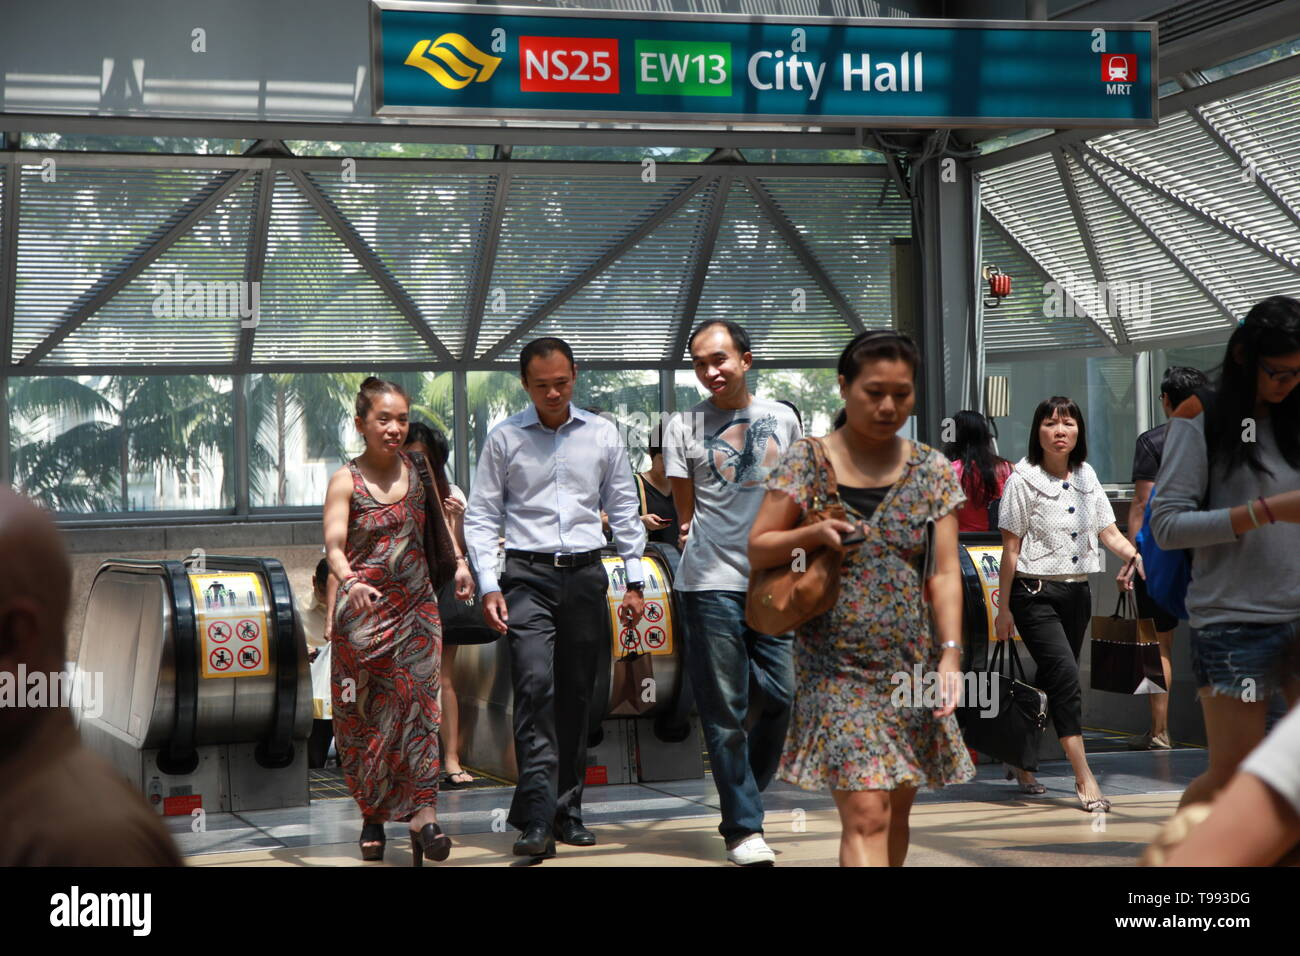 Mass Rapid Transit, MRT Metro system, Singapore Stock Photo